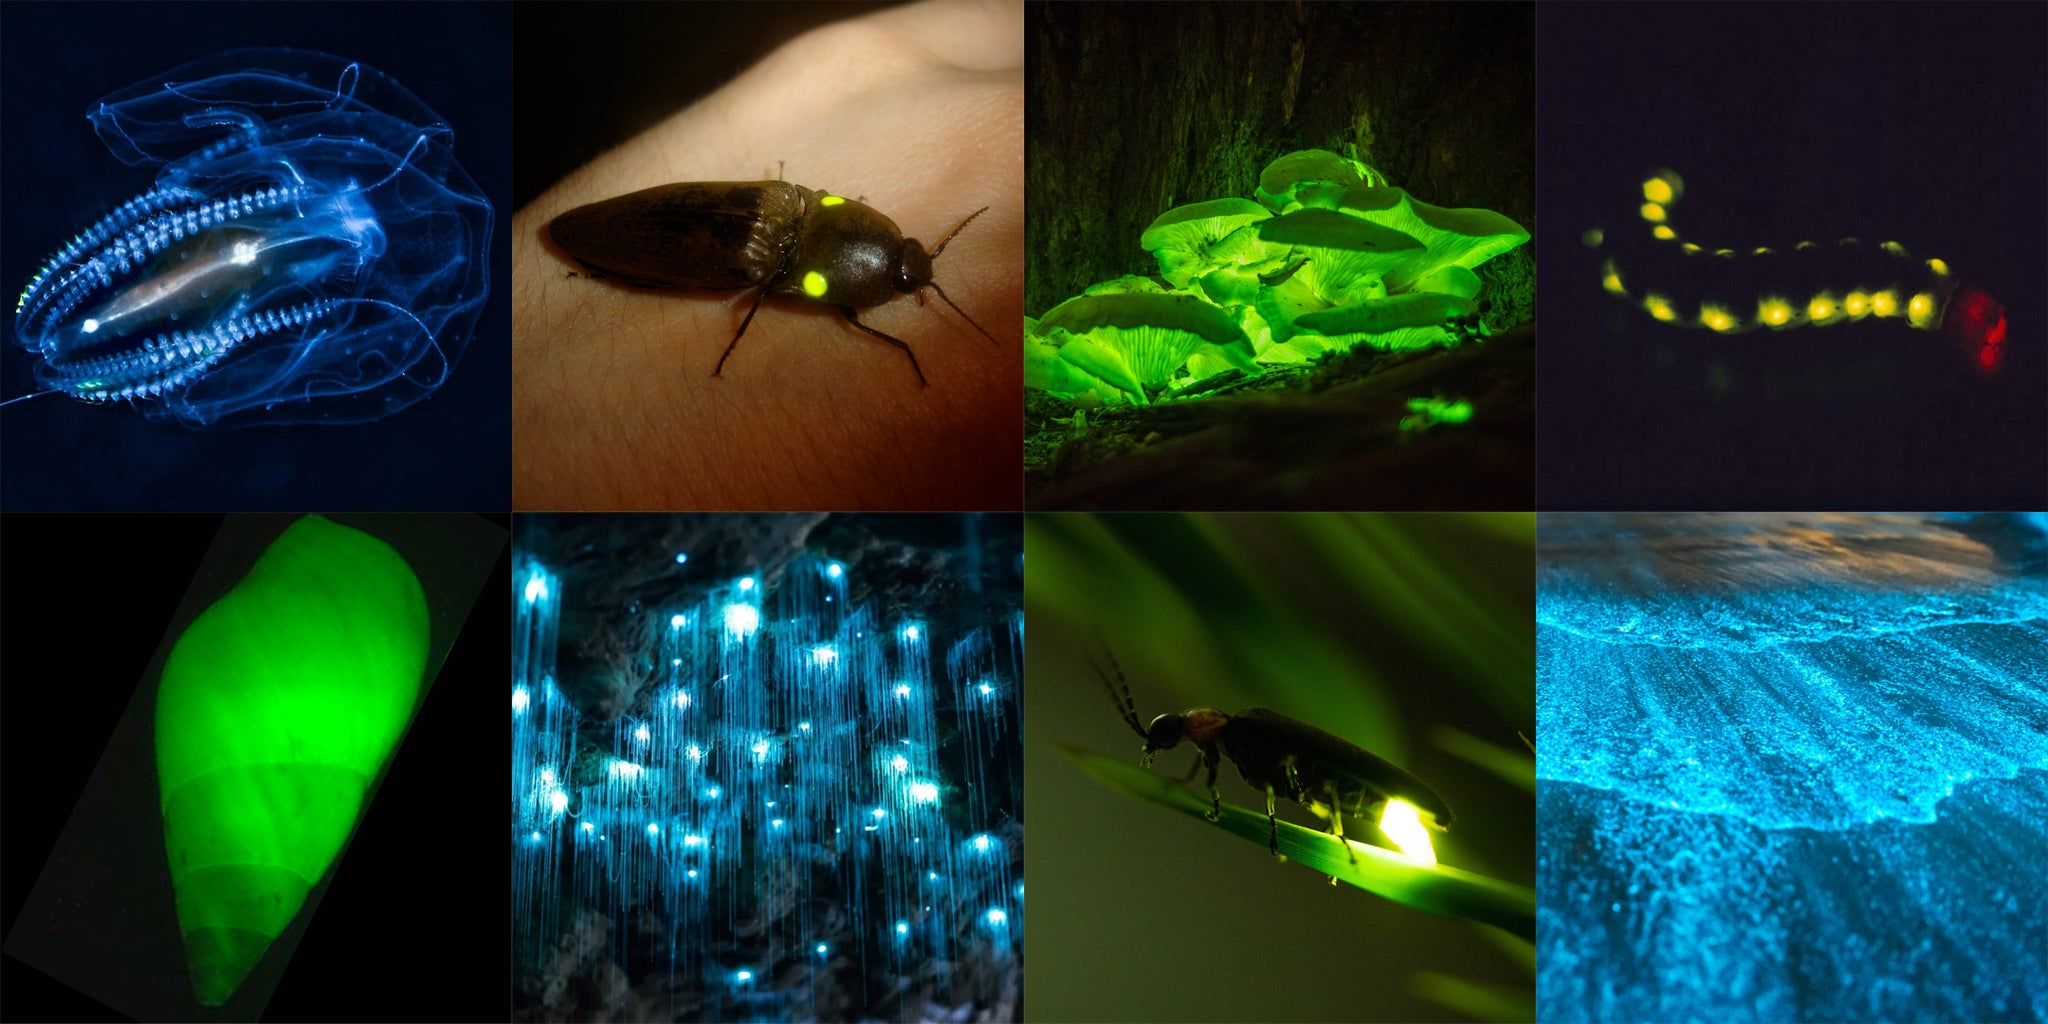 Examples of bioluminescent organisms